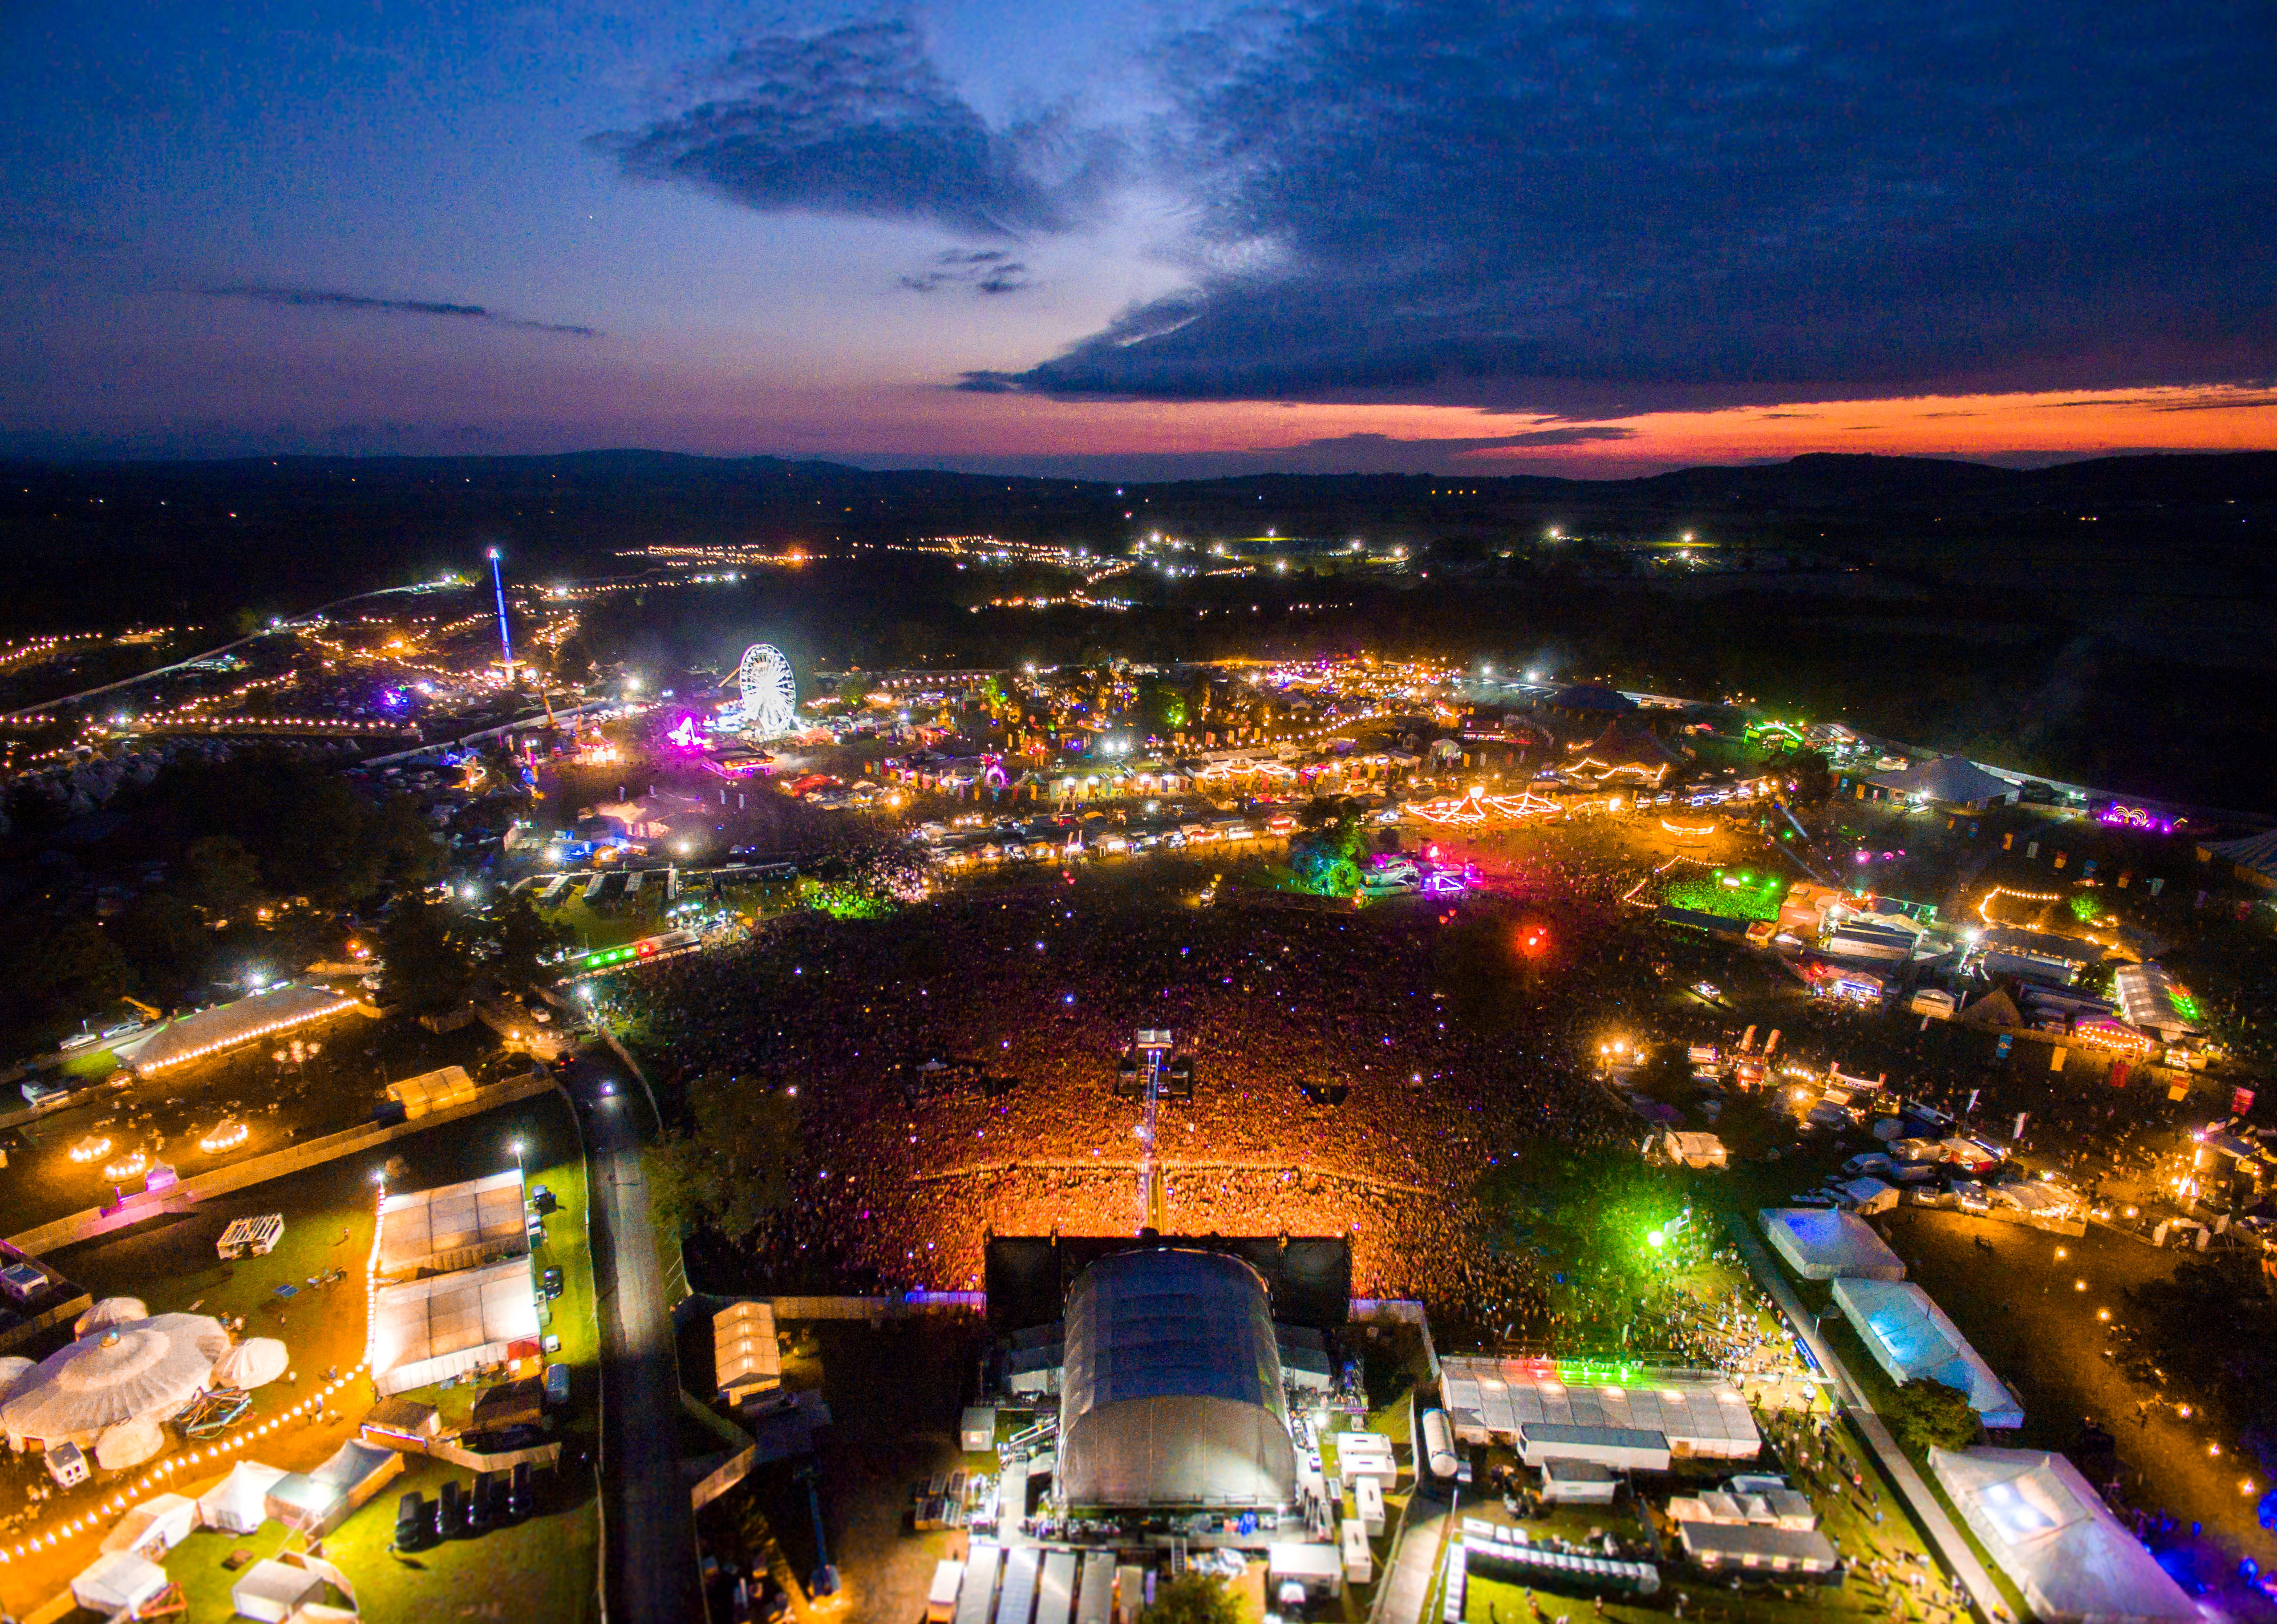 Friends of the Earth condemn Electric Picnic litter